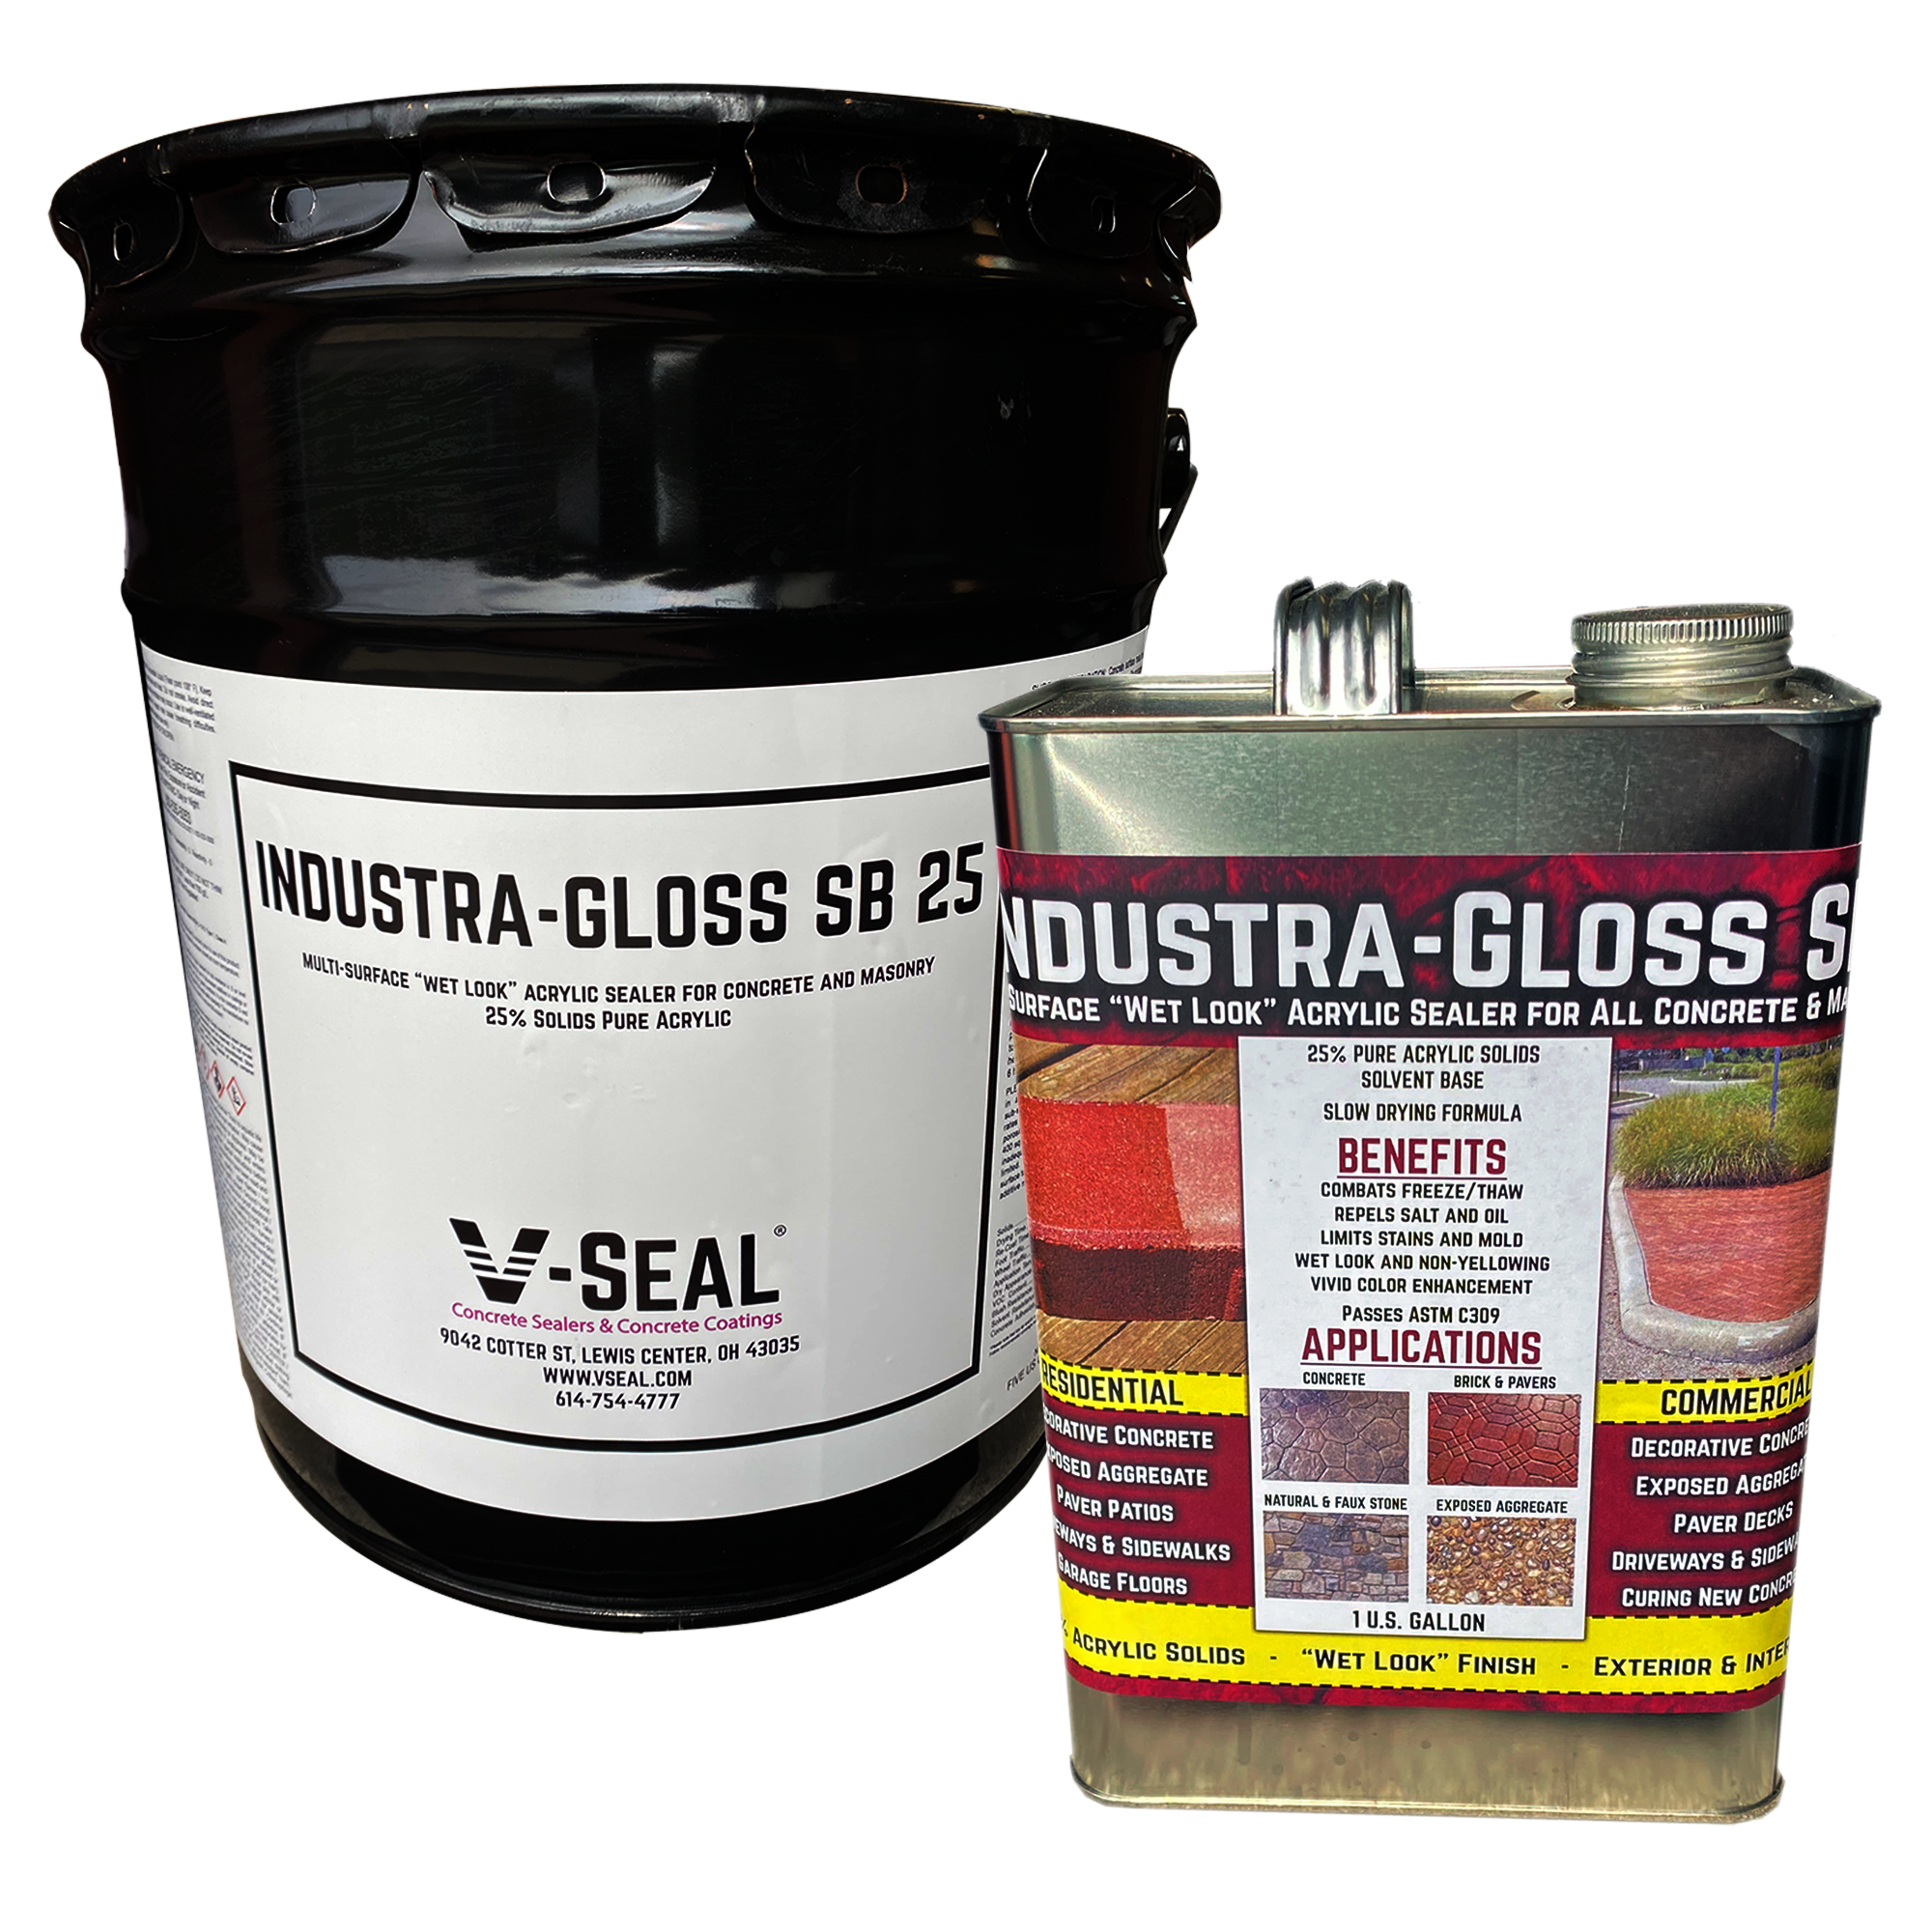 https://www.vseal.com/media/catalog/product/cache/1/image/9df78eab33525d08d6e5fb8d27136e95/i/n/industra-gloss_sb_-_5_gal_1_gal_transparency.png